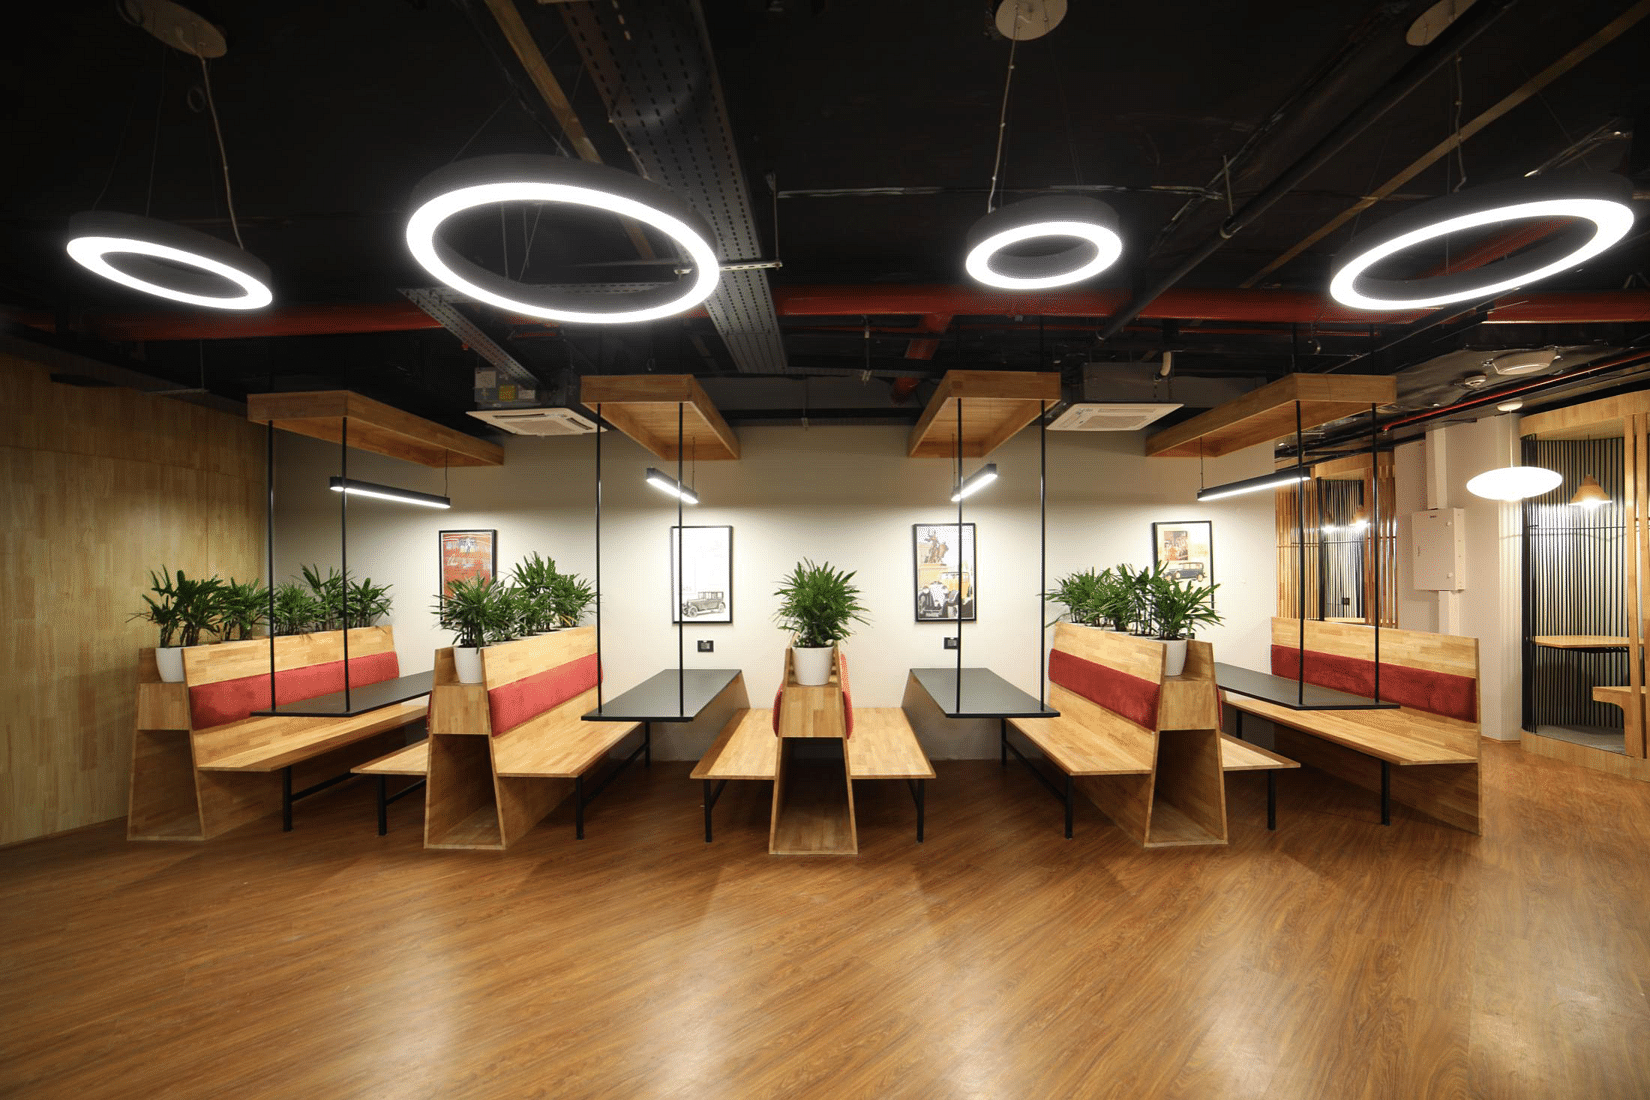 OYO Workspaces forays into Hyderabad with 700-seater Innov8 centre - YourStory